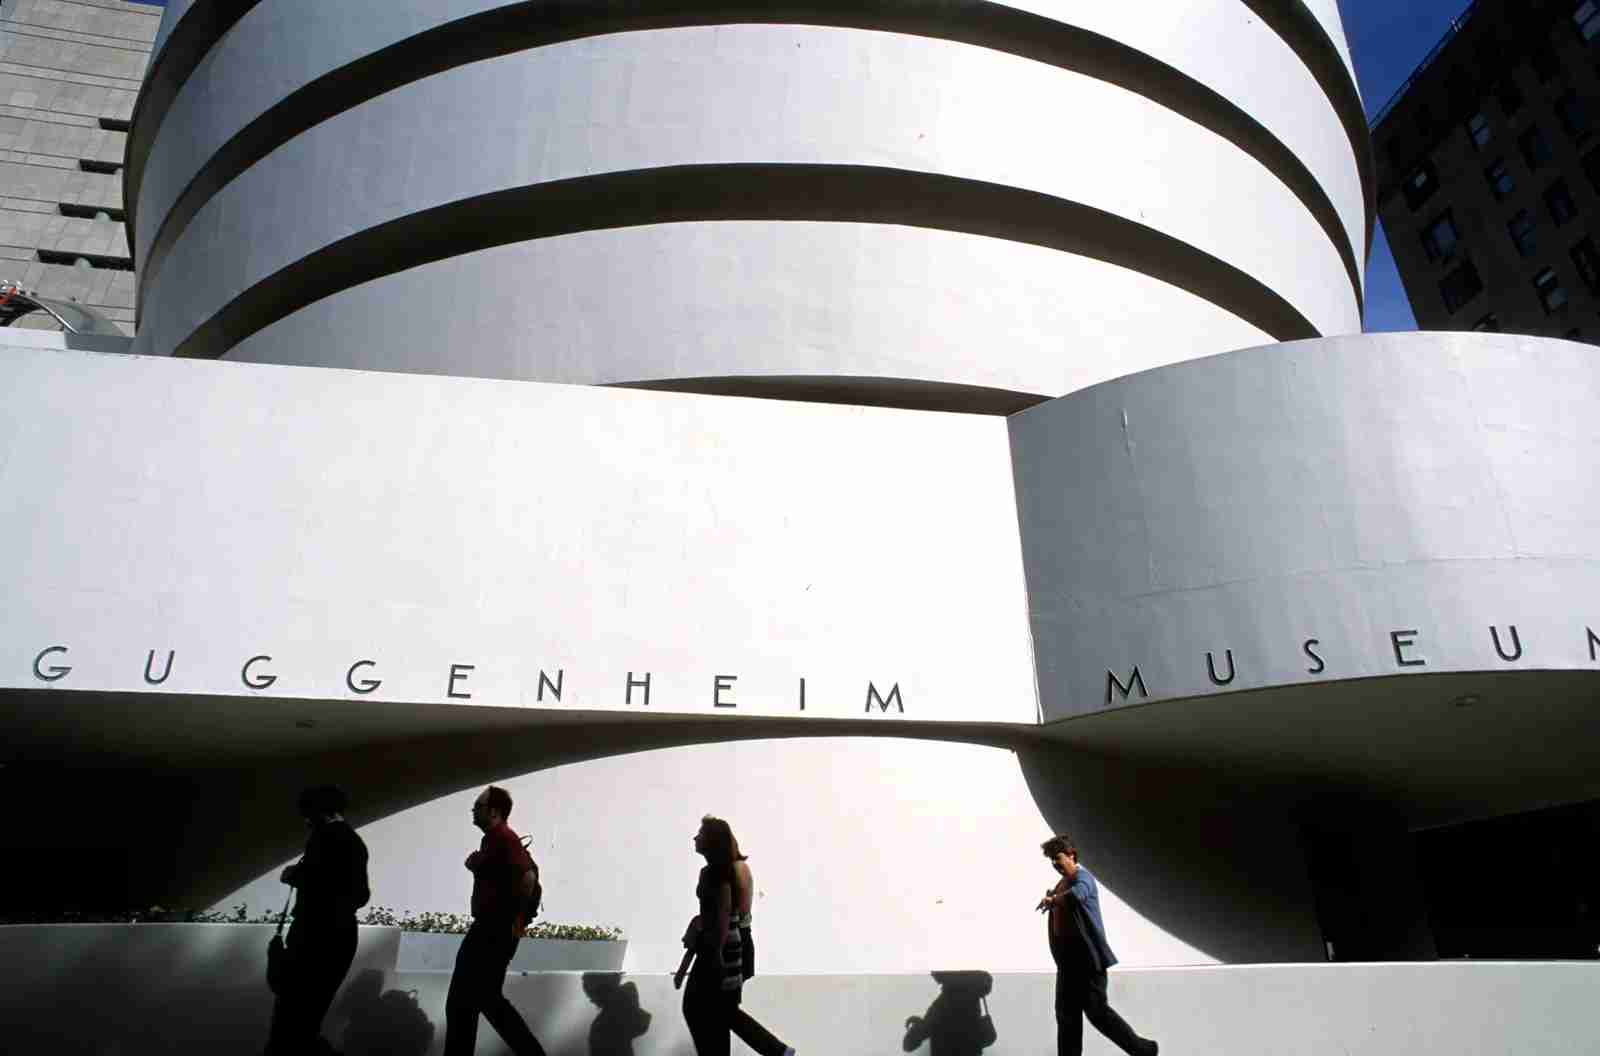 The Guggenheim Museum in New York City. (Photo by Luis Davilla/Getty Images)